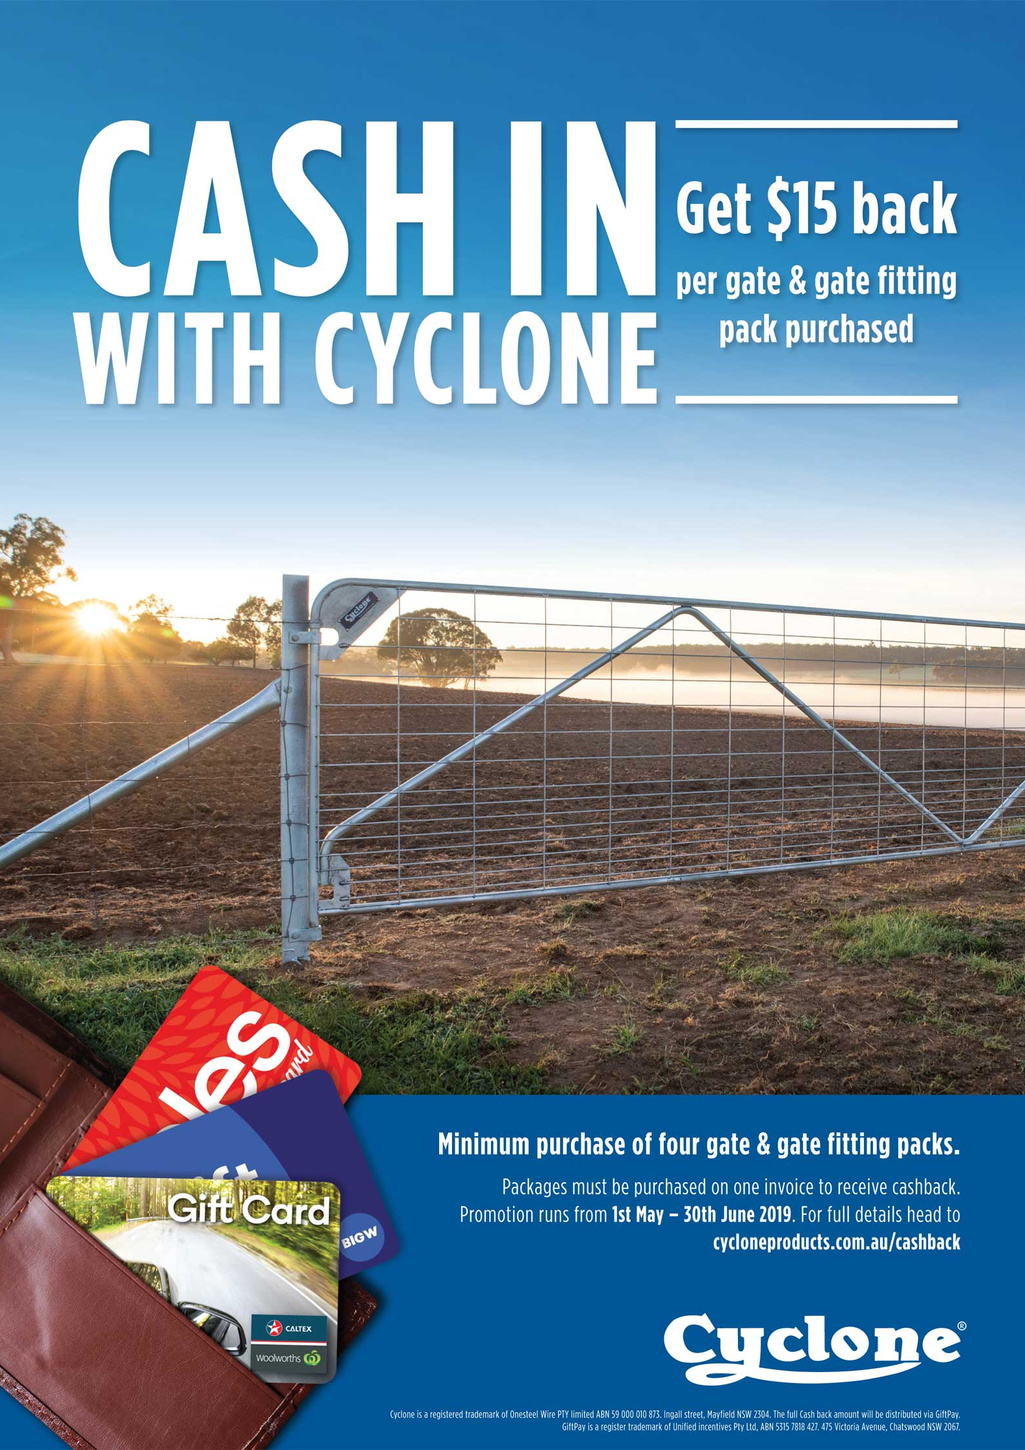 cash in with cyclone